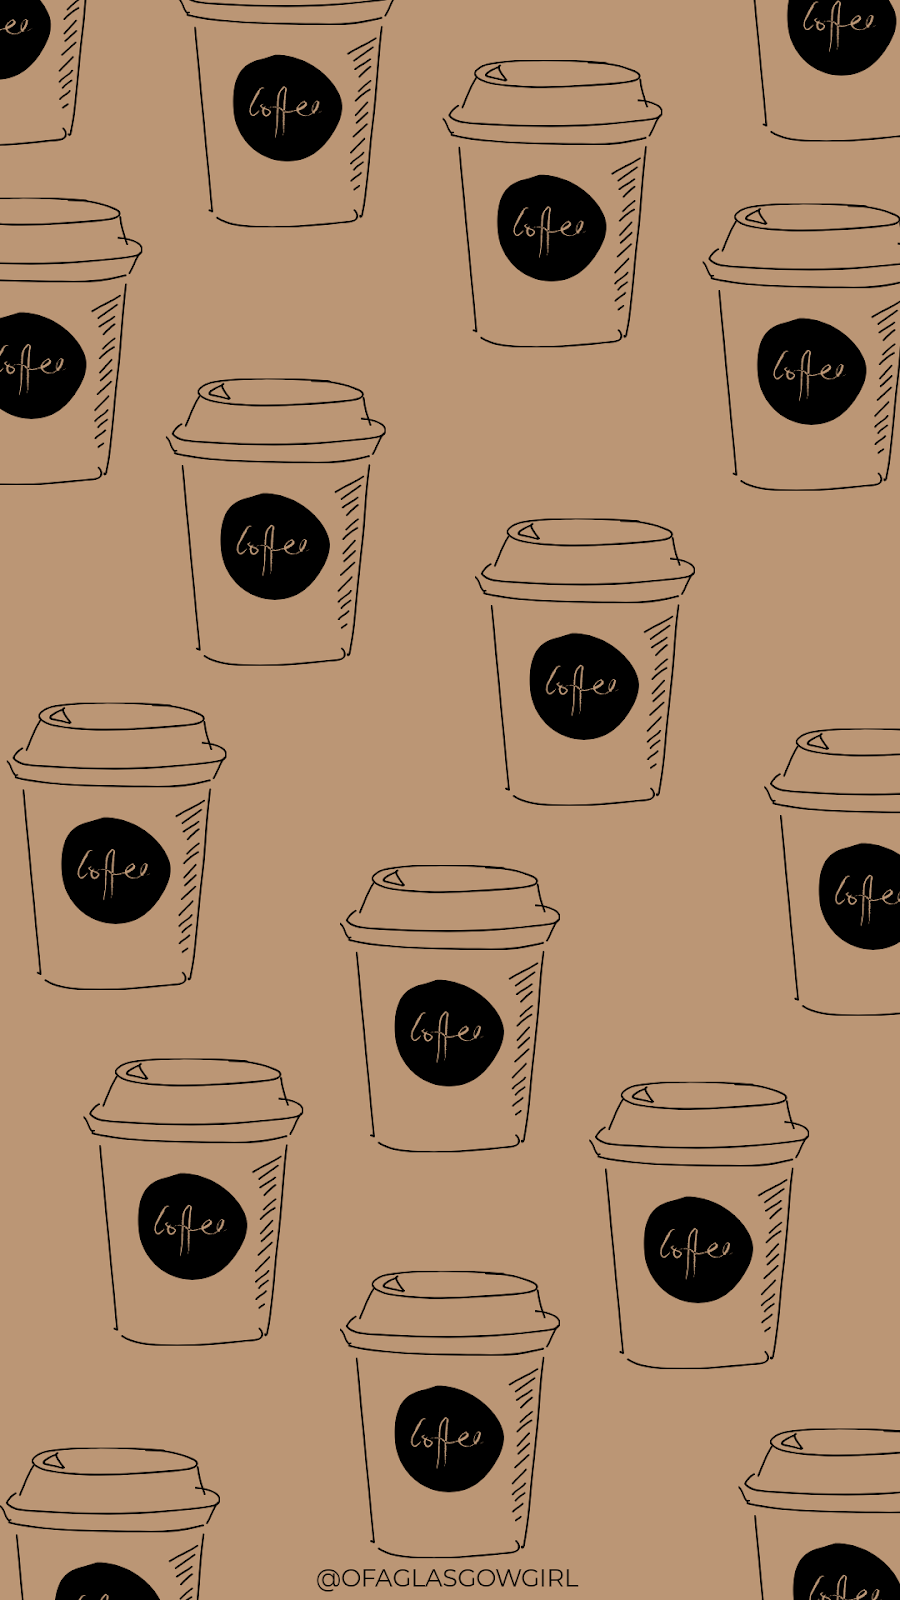 Autumn phone wallpaper or instagram template with a repeated pattern of coffee cups on it.